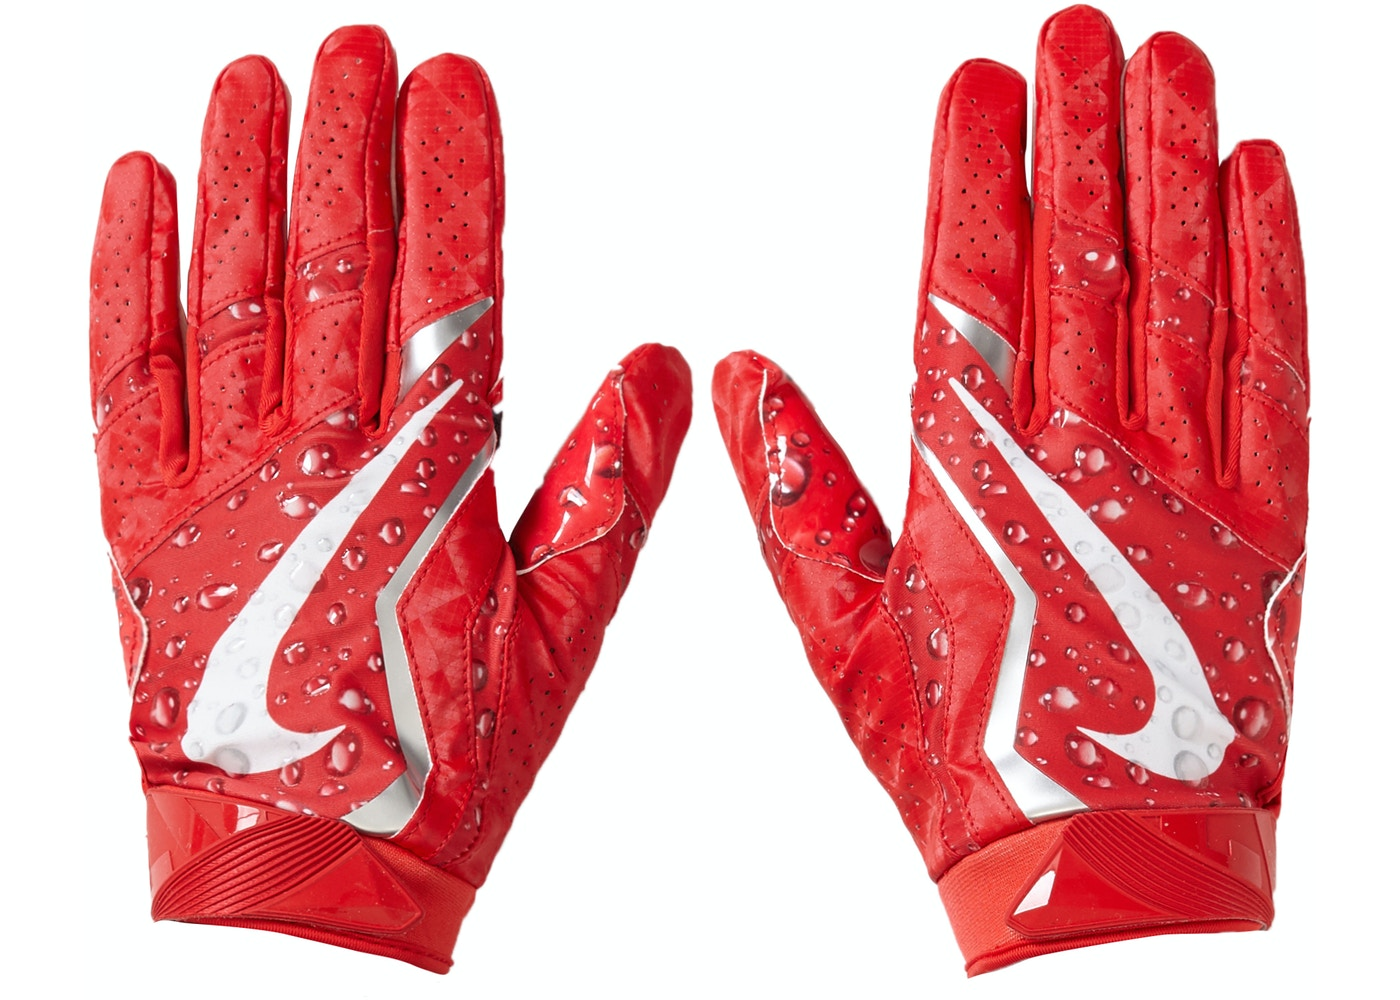 Supreme Nike Vapor Jet 4.0 Football Gloves Red - FW18 0f97909b4